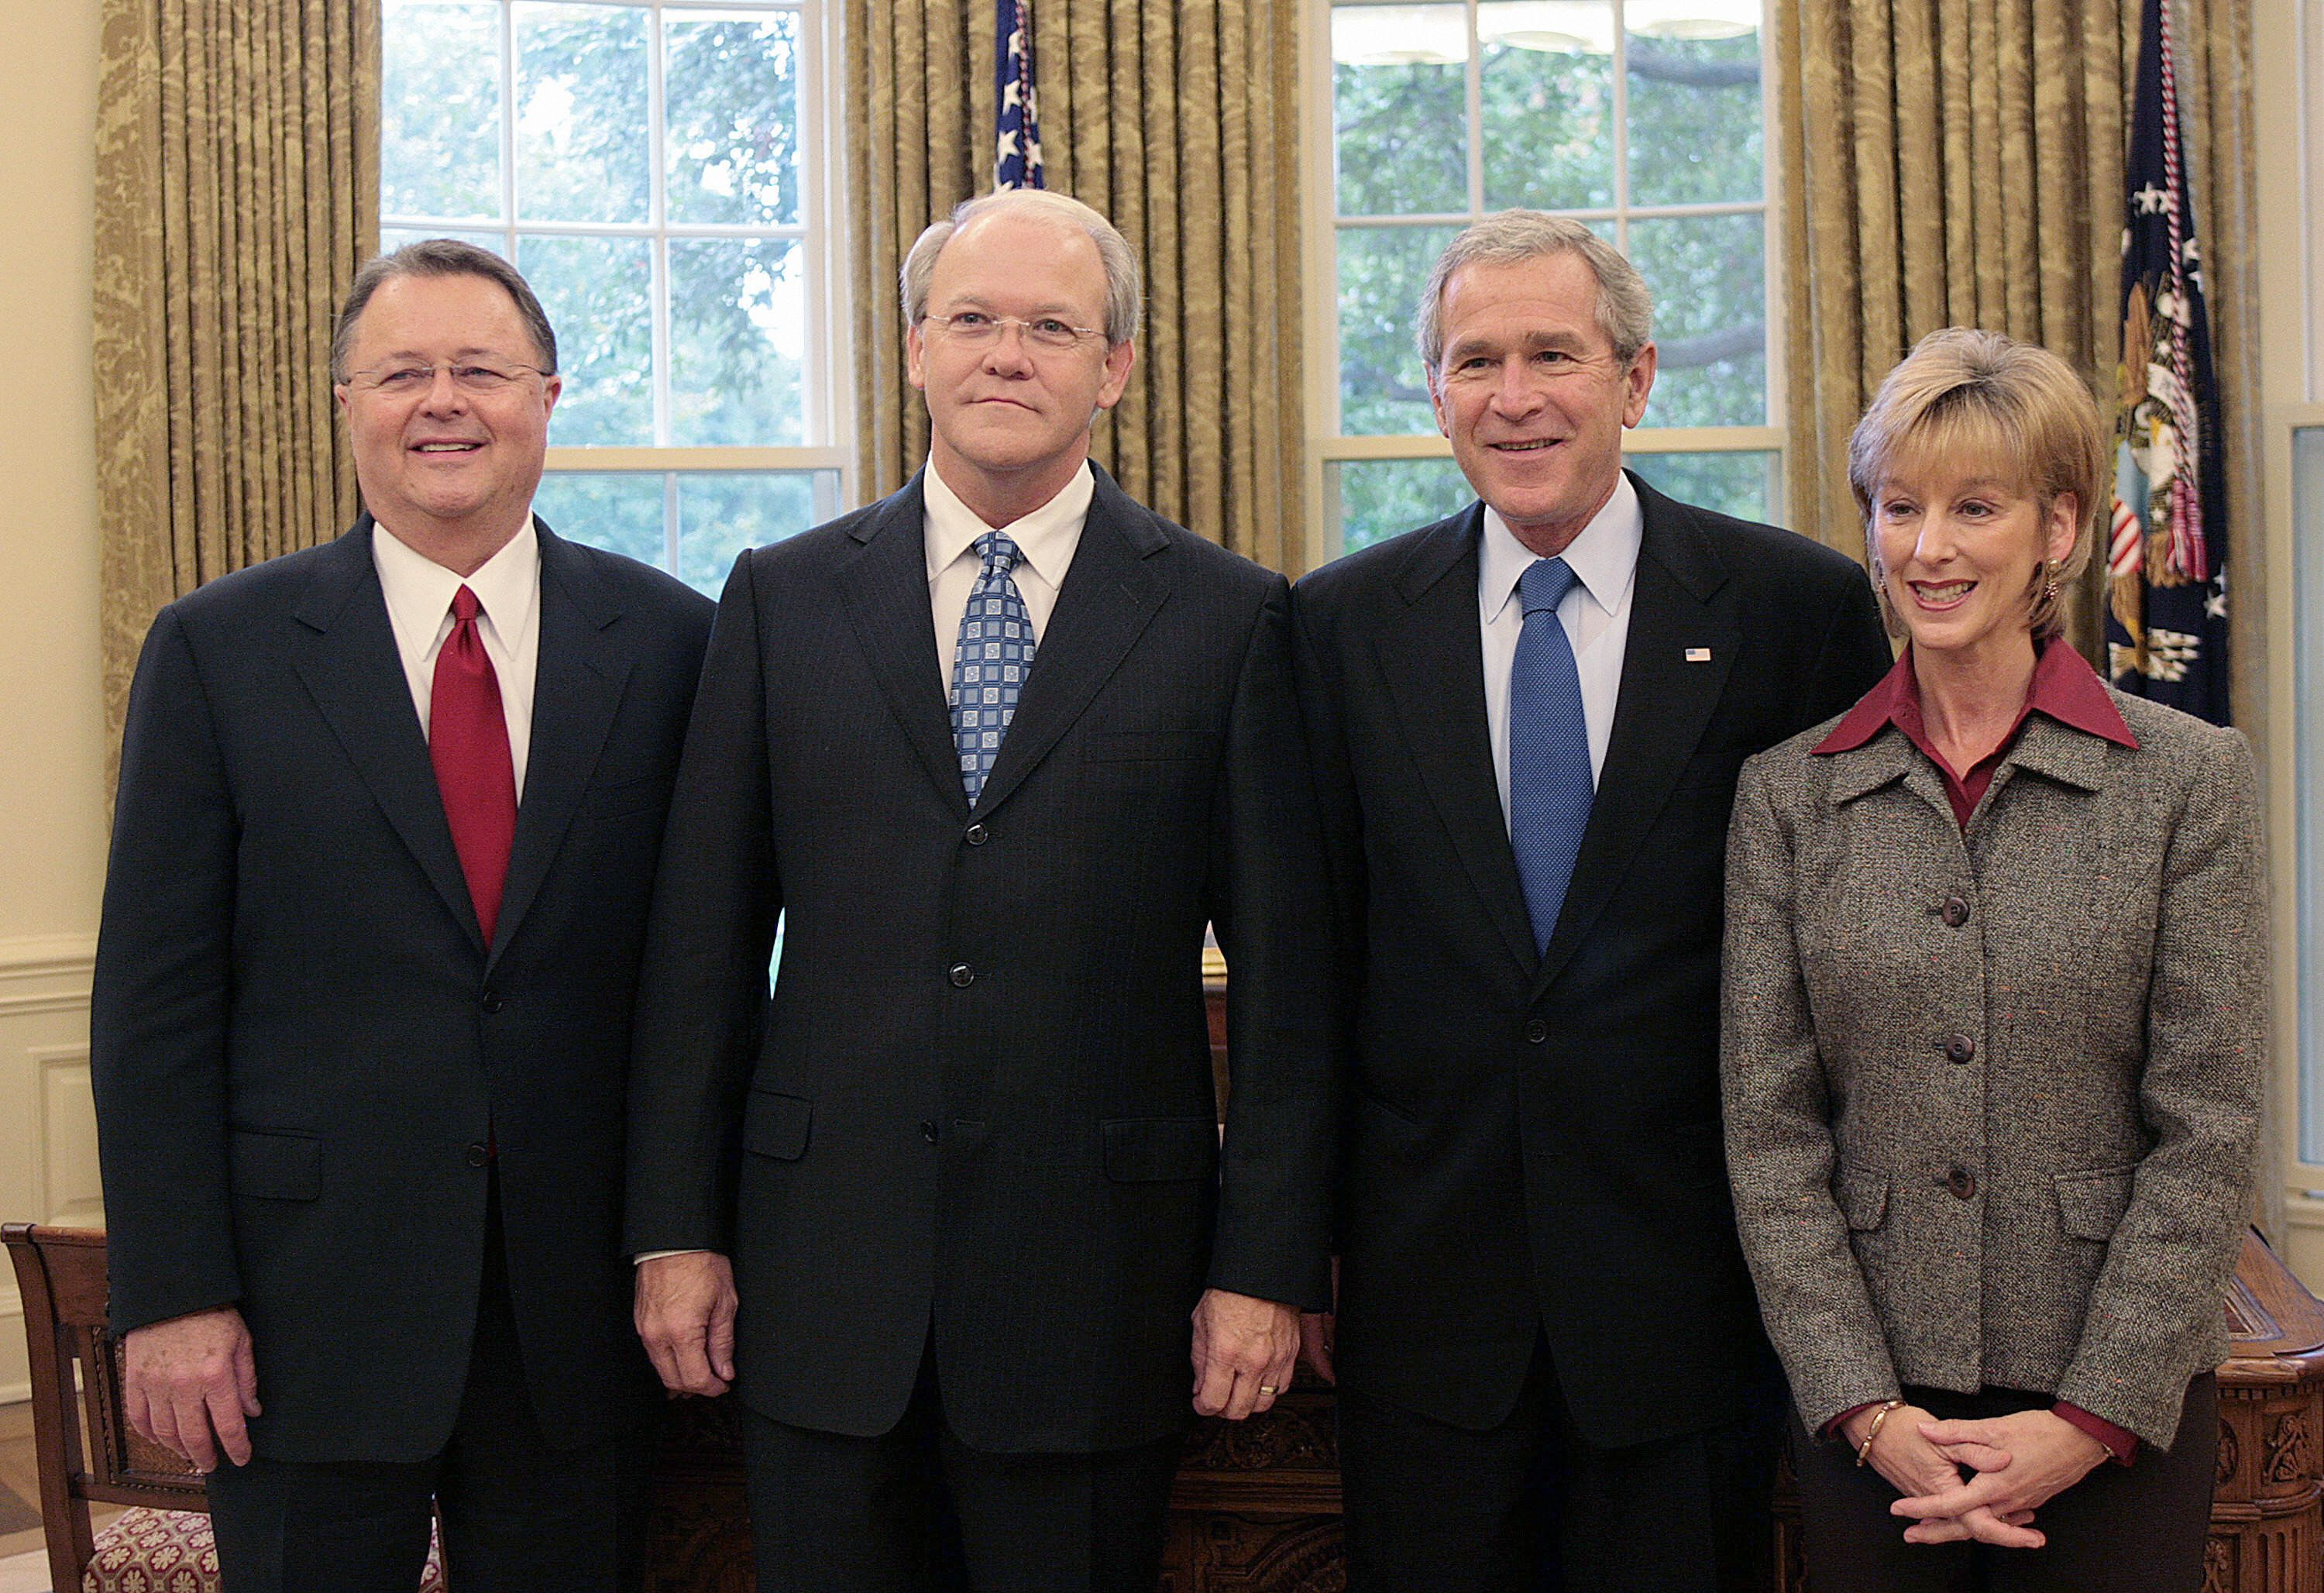 Washington, UNITED STATES:  US President George W. Bush (2nd R) poses with Southern Baptist Convention President Dr. Frank S. Page (2nd L), Dr. Page's wife Dayle (R), and President and CEO of the Executive Committee of Southern Baptist Convention D. Morris Chapman in the Oval Office of the White House in Washington, DC, 11 October 2006.      AFP PHOTO/Jim WATSON  (Photo credit should read JIM WATSON/AFP/Getty Images)